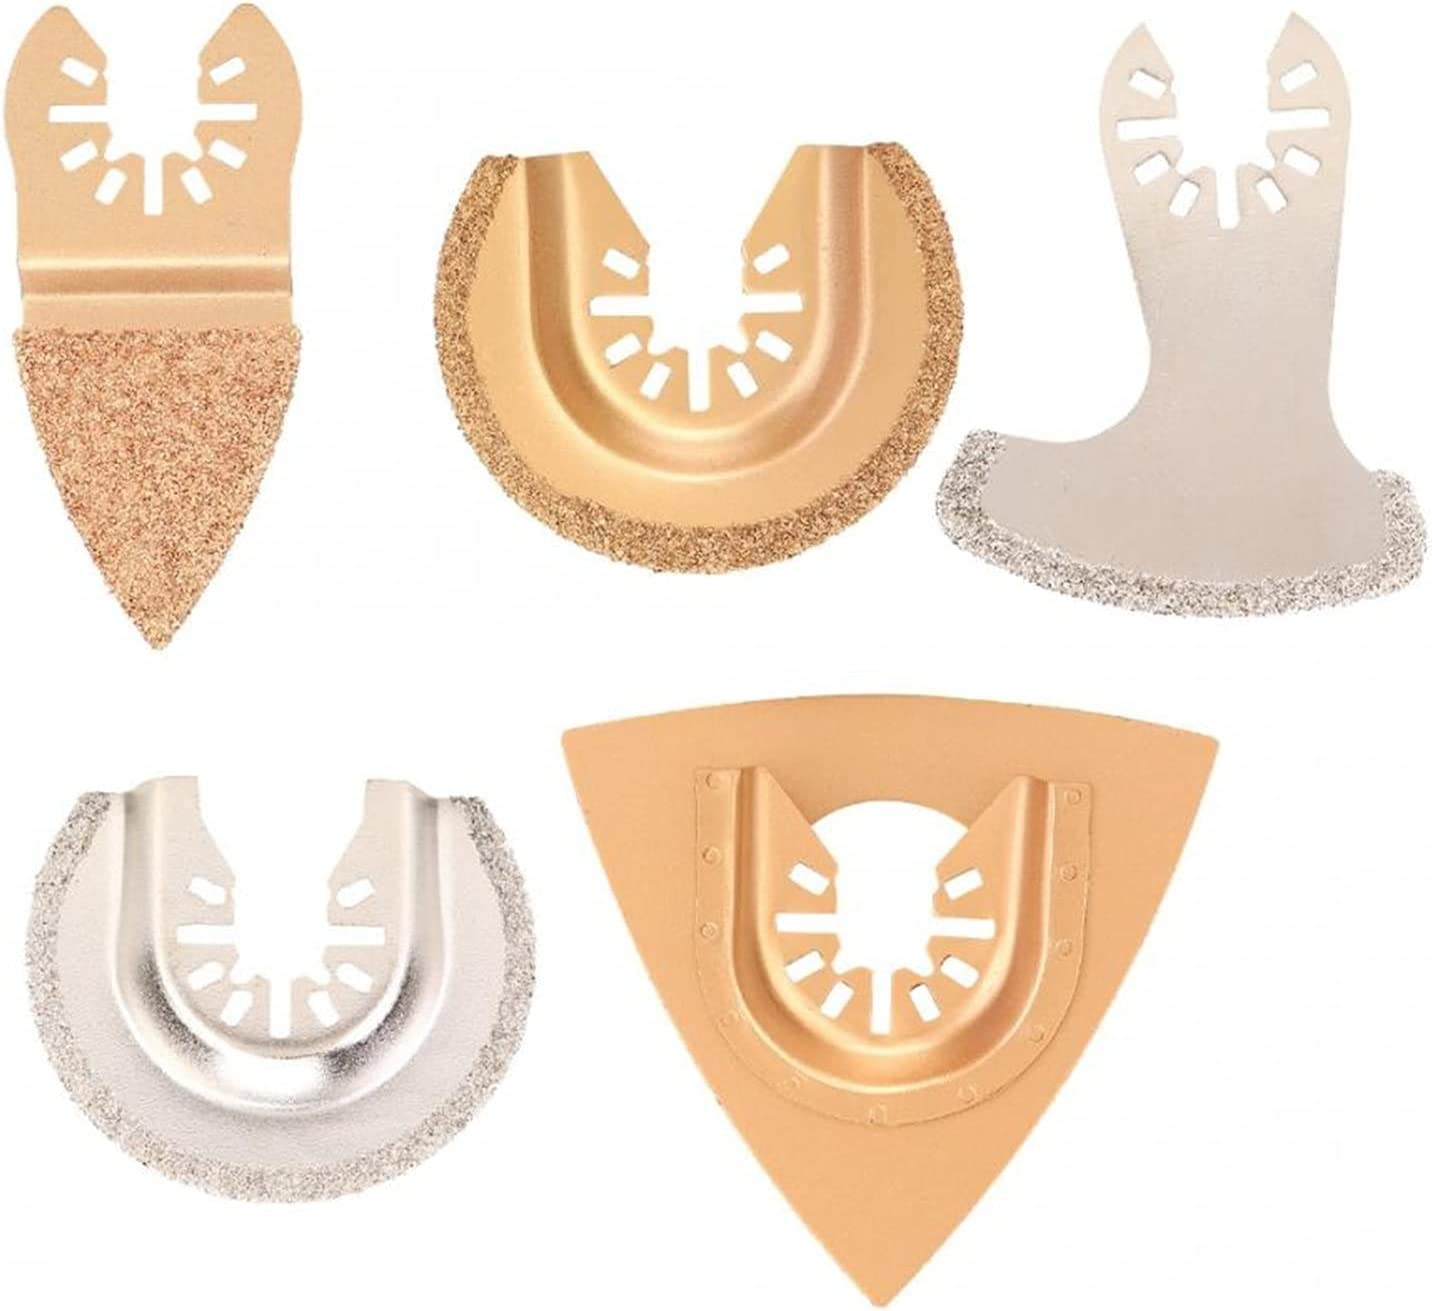 KESHIKUI Directly outlet managed store New MEI 5Pcs Carbide Saw Mult Blade Diamond Oscillating